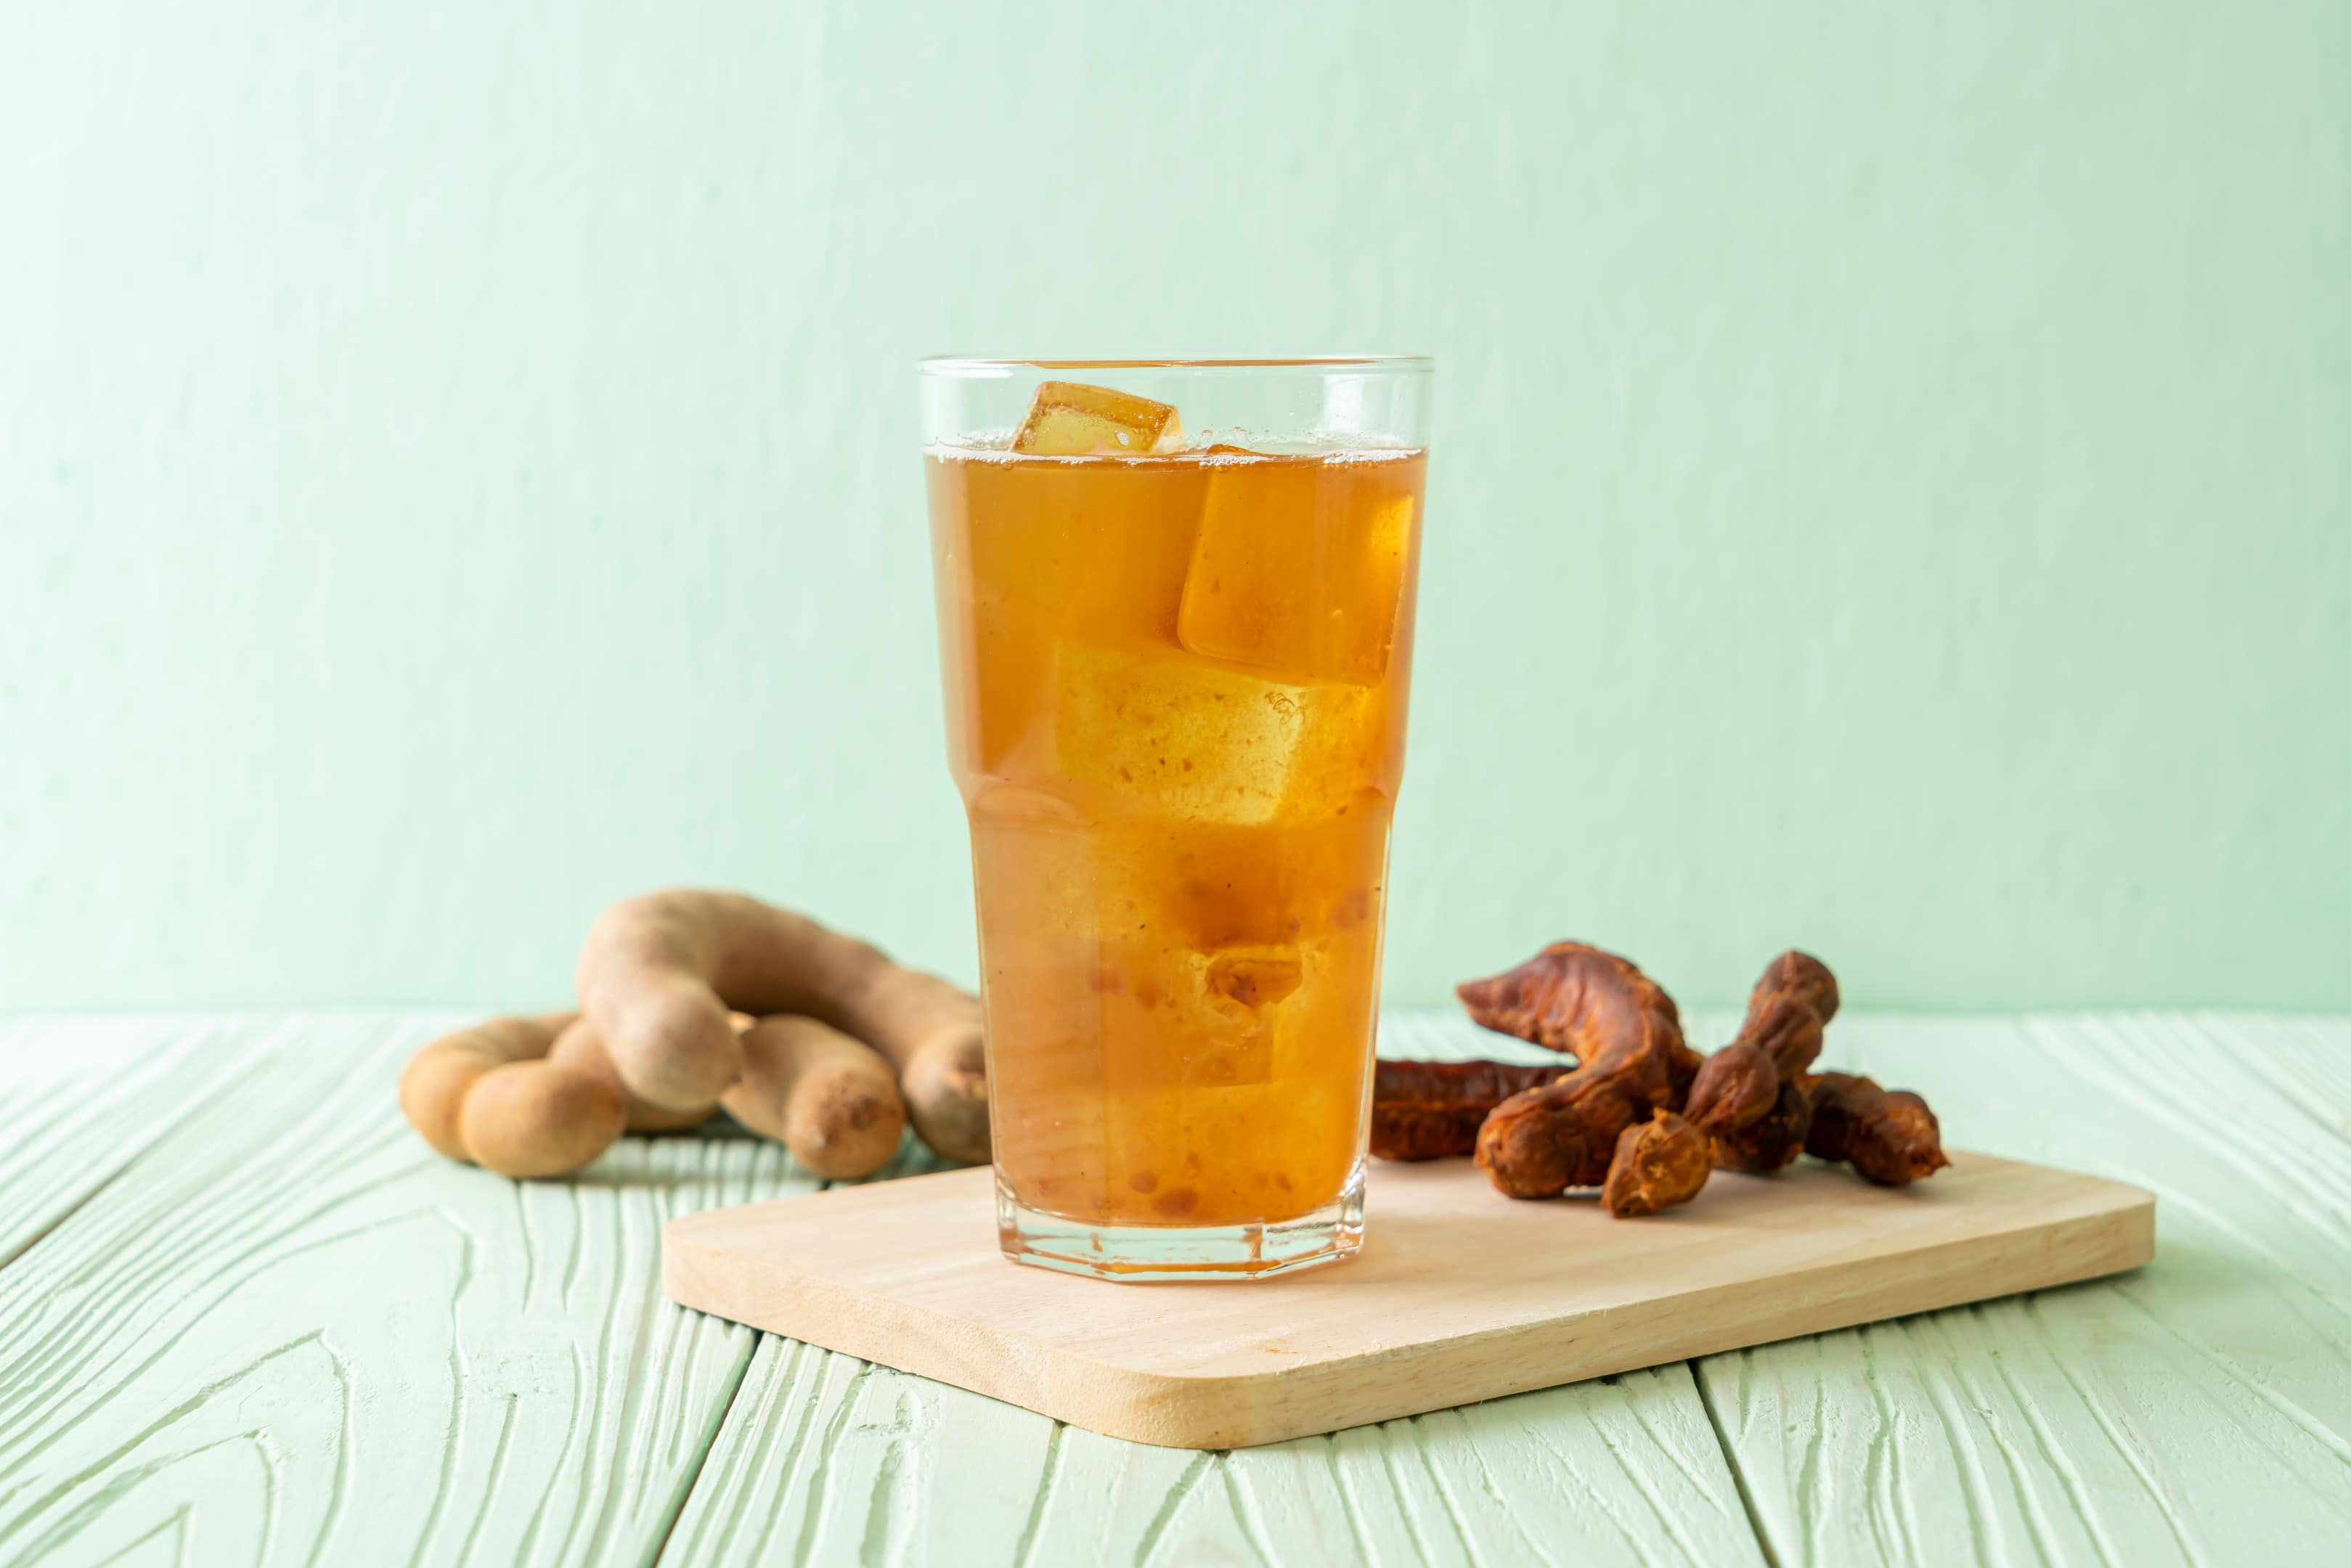 Tamarind and turmeric drink with ice cubes on wooden board